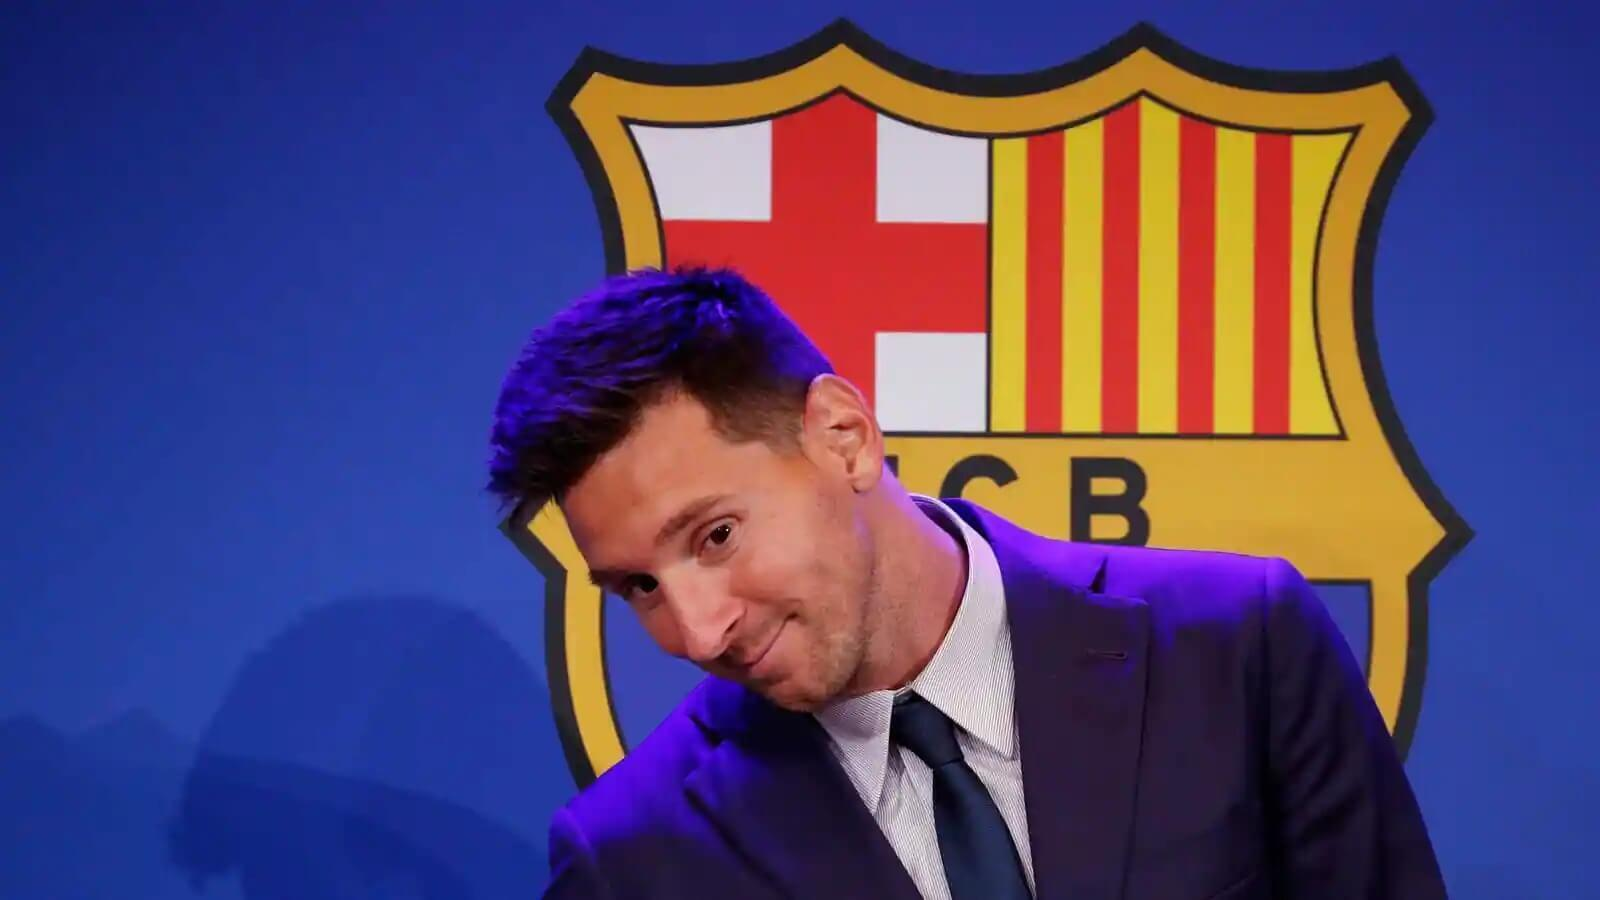 Javier Tebas says Messi could play for Barcelona, know how